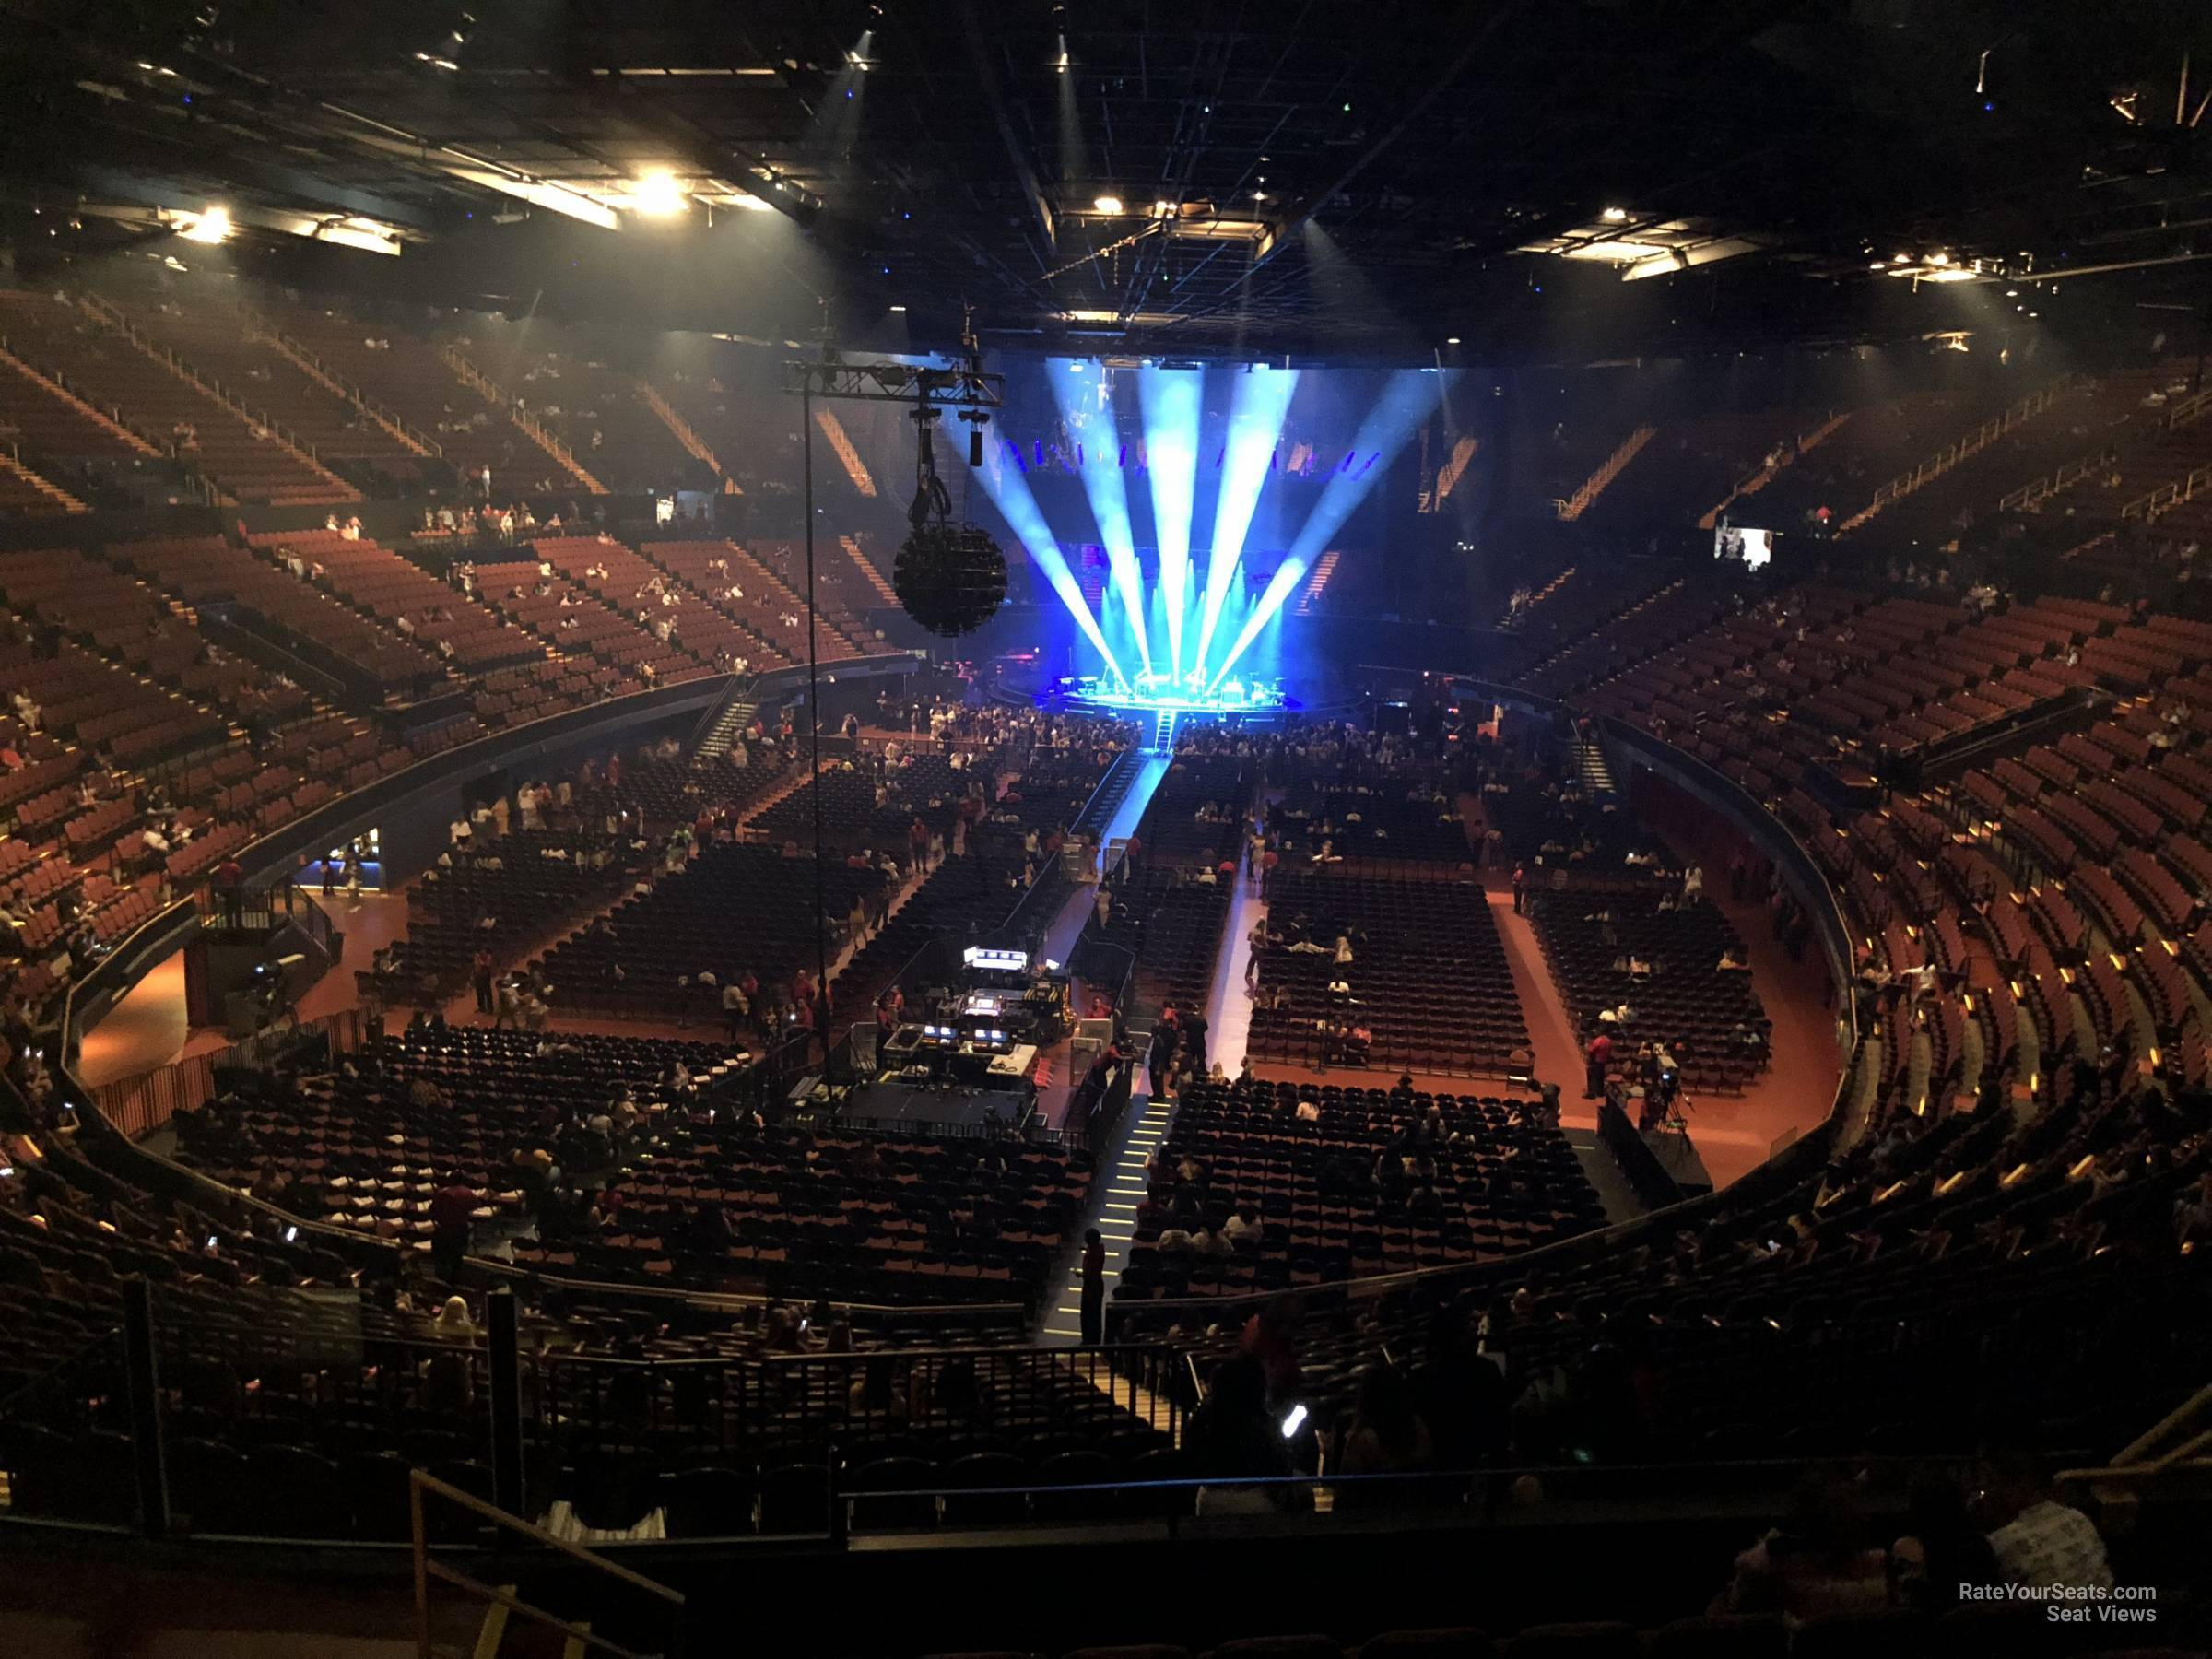 Section 201 At The Forum Rateyourseats Com